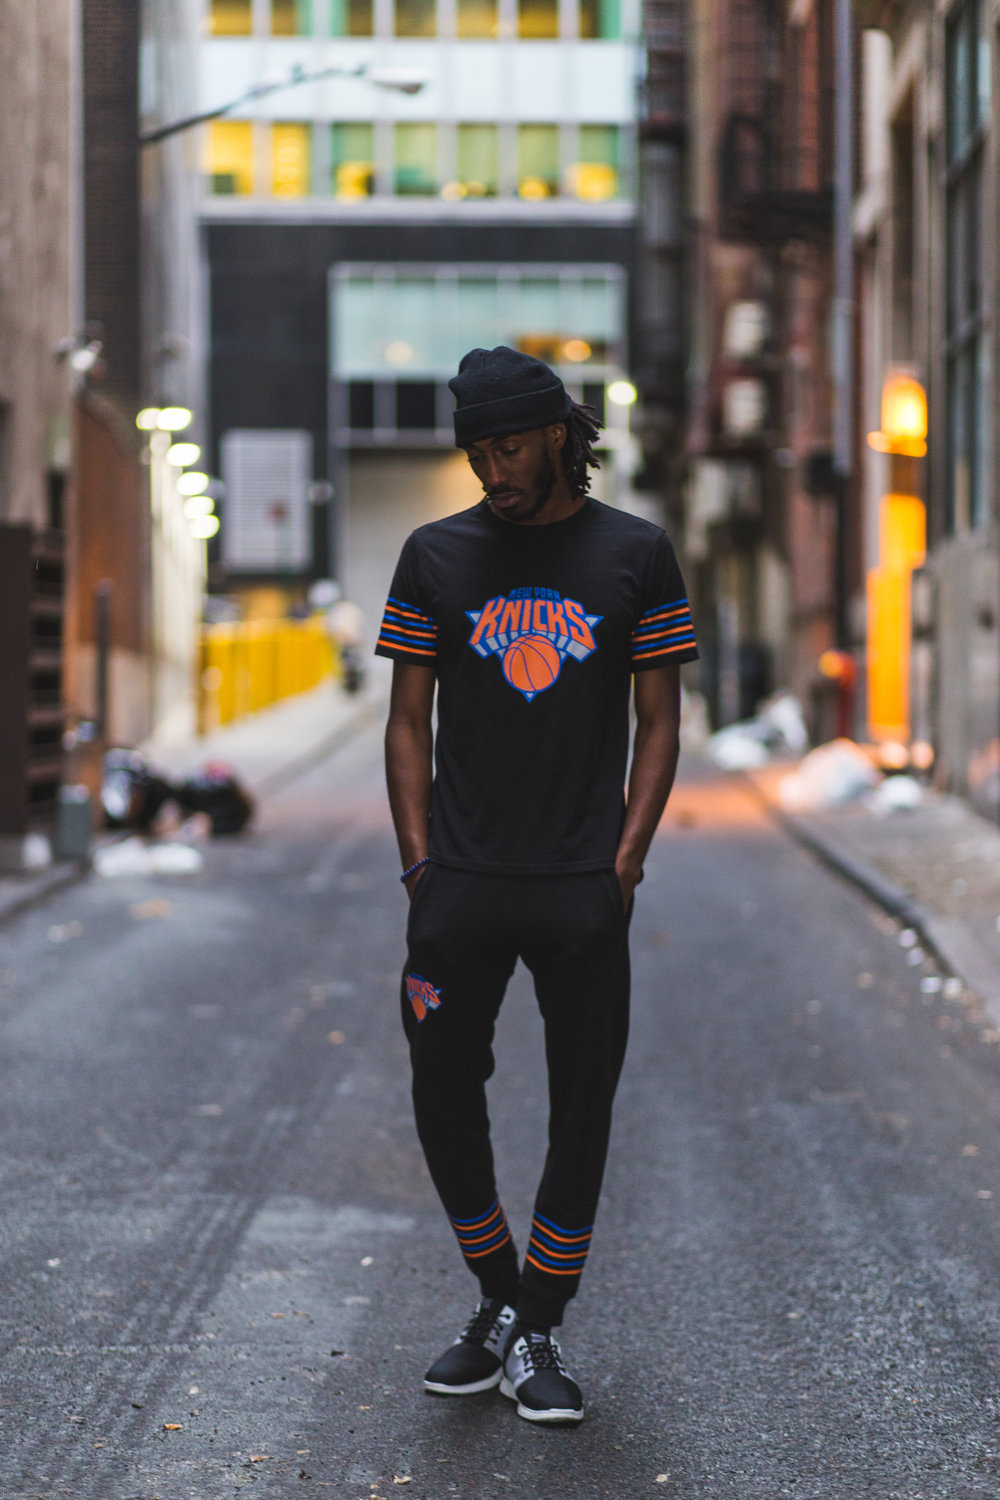 Grungy Gentleman x New York Knicks 1.jpg